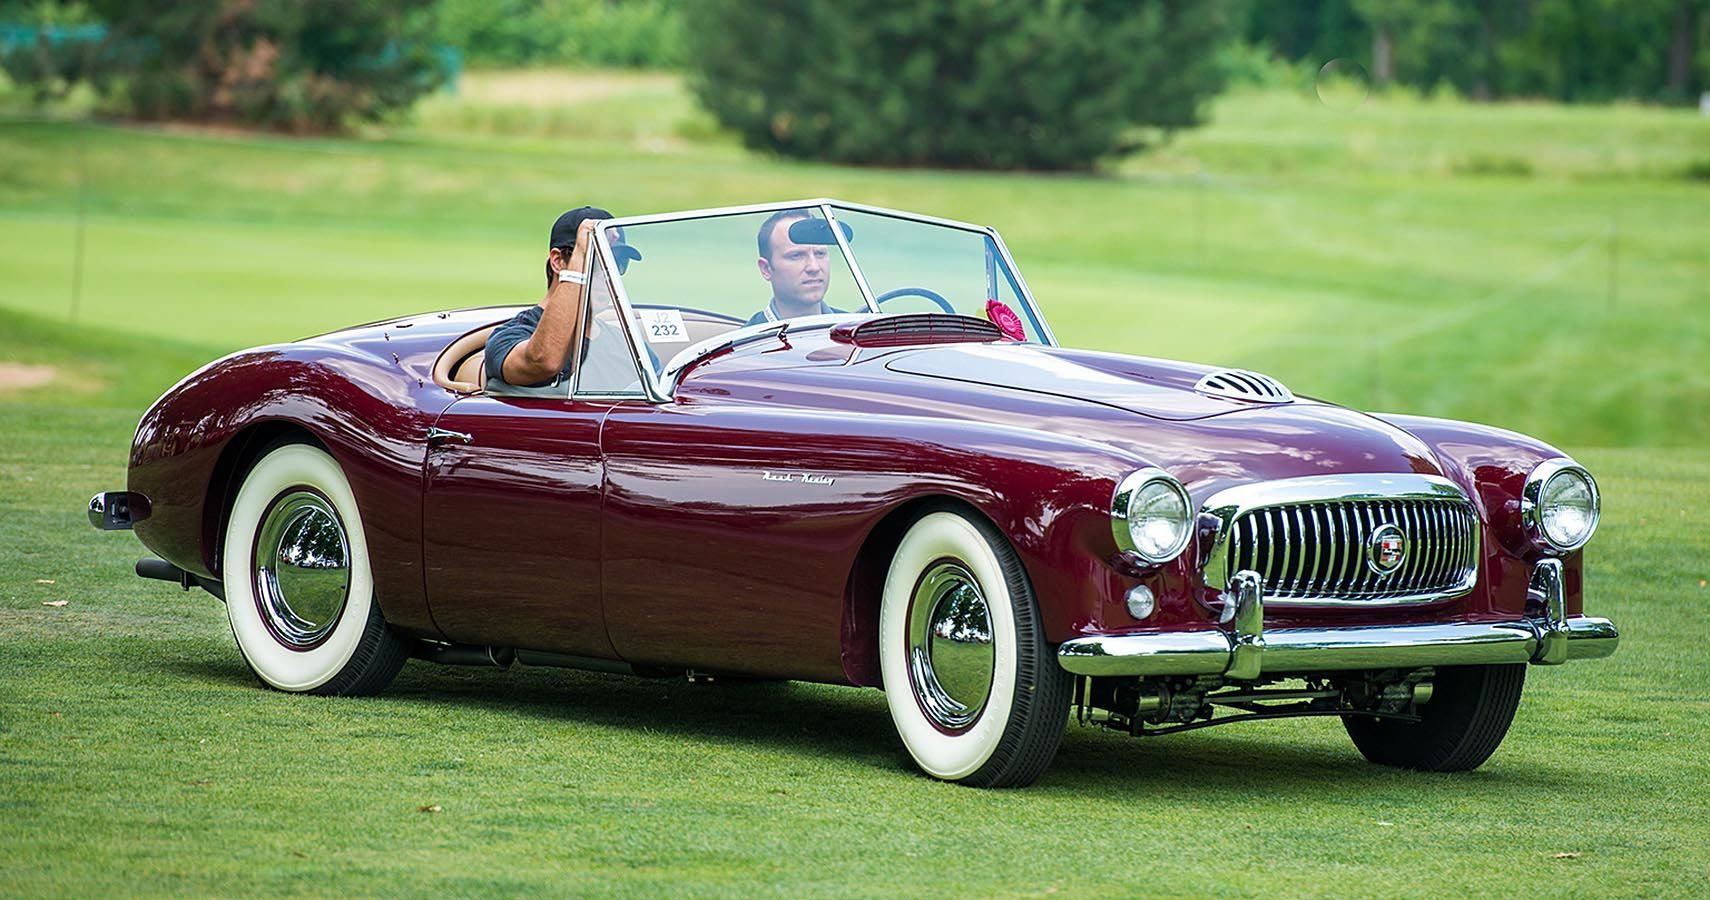 This Is The Rarest Car Dennis Collins From Car World Has Ever Found